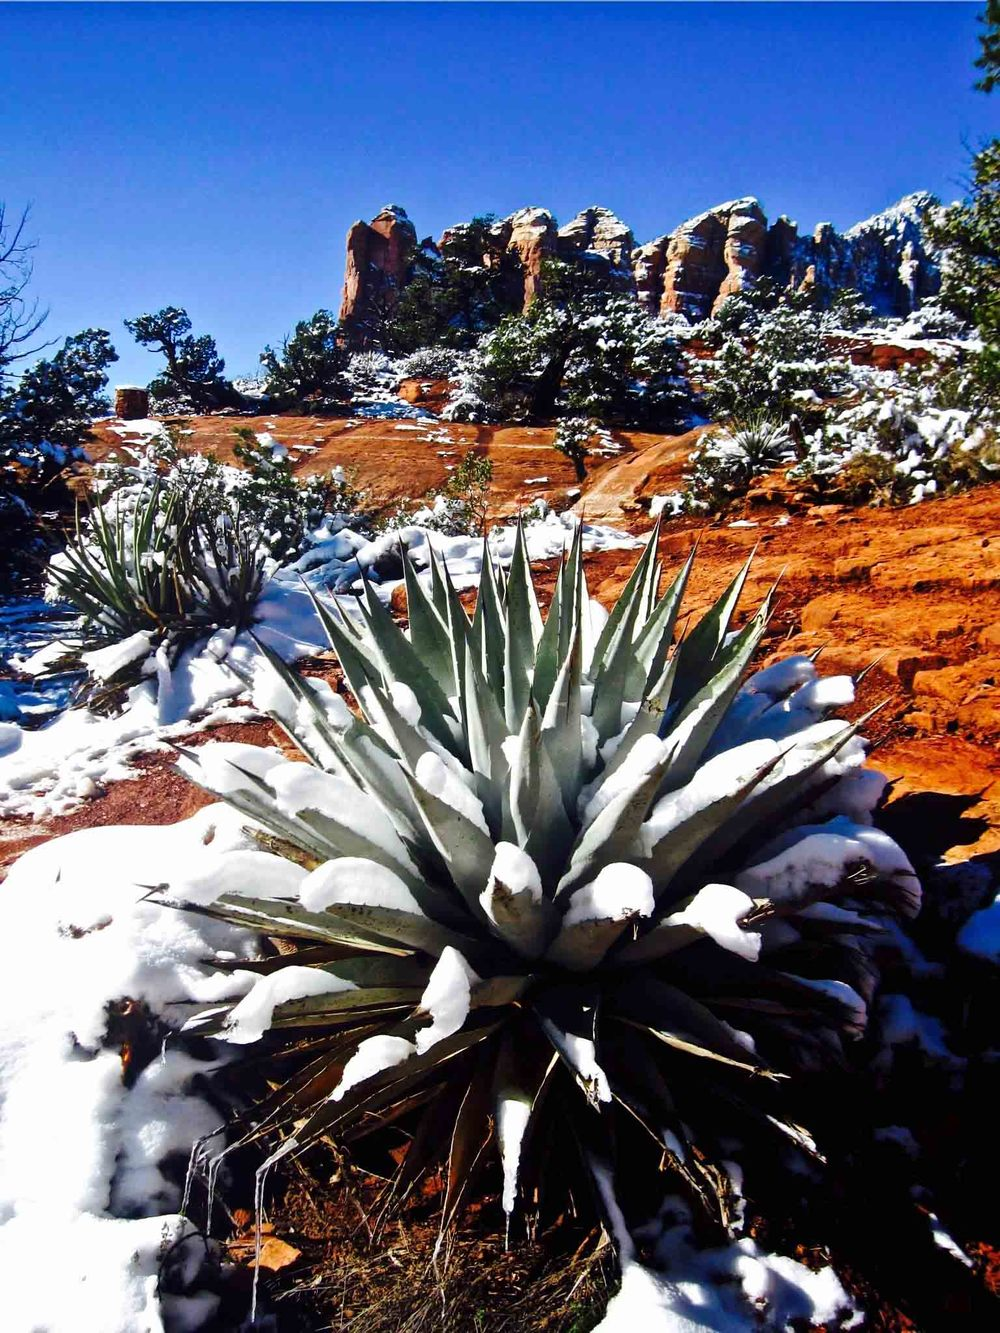 Soldiers' Pass, Sedona, Arizona, January 2011 Soldiers' Pass, Sedona, Arizona, January 2011